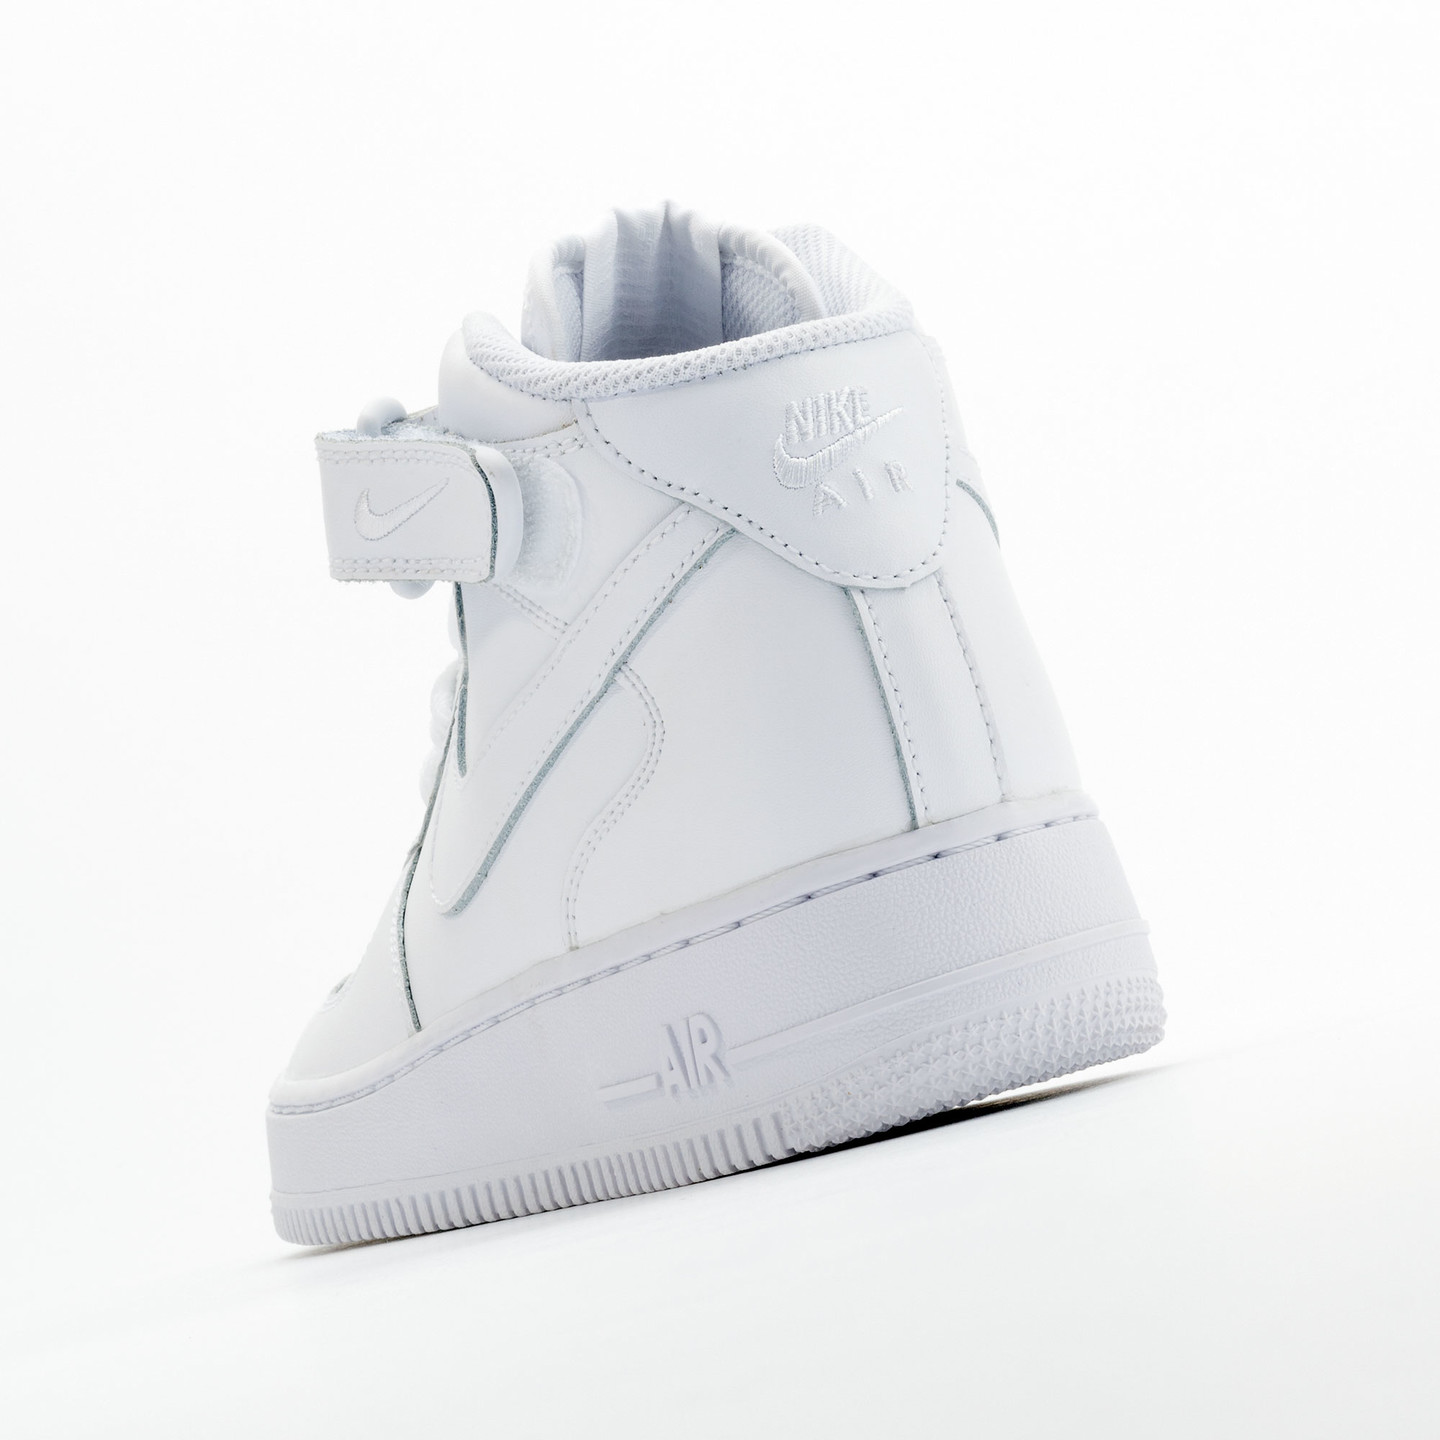 Nike Air Force 1 Mid GS White / White 314195-113-39